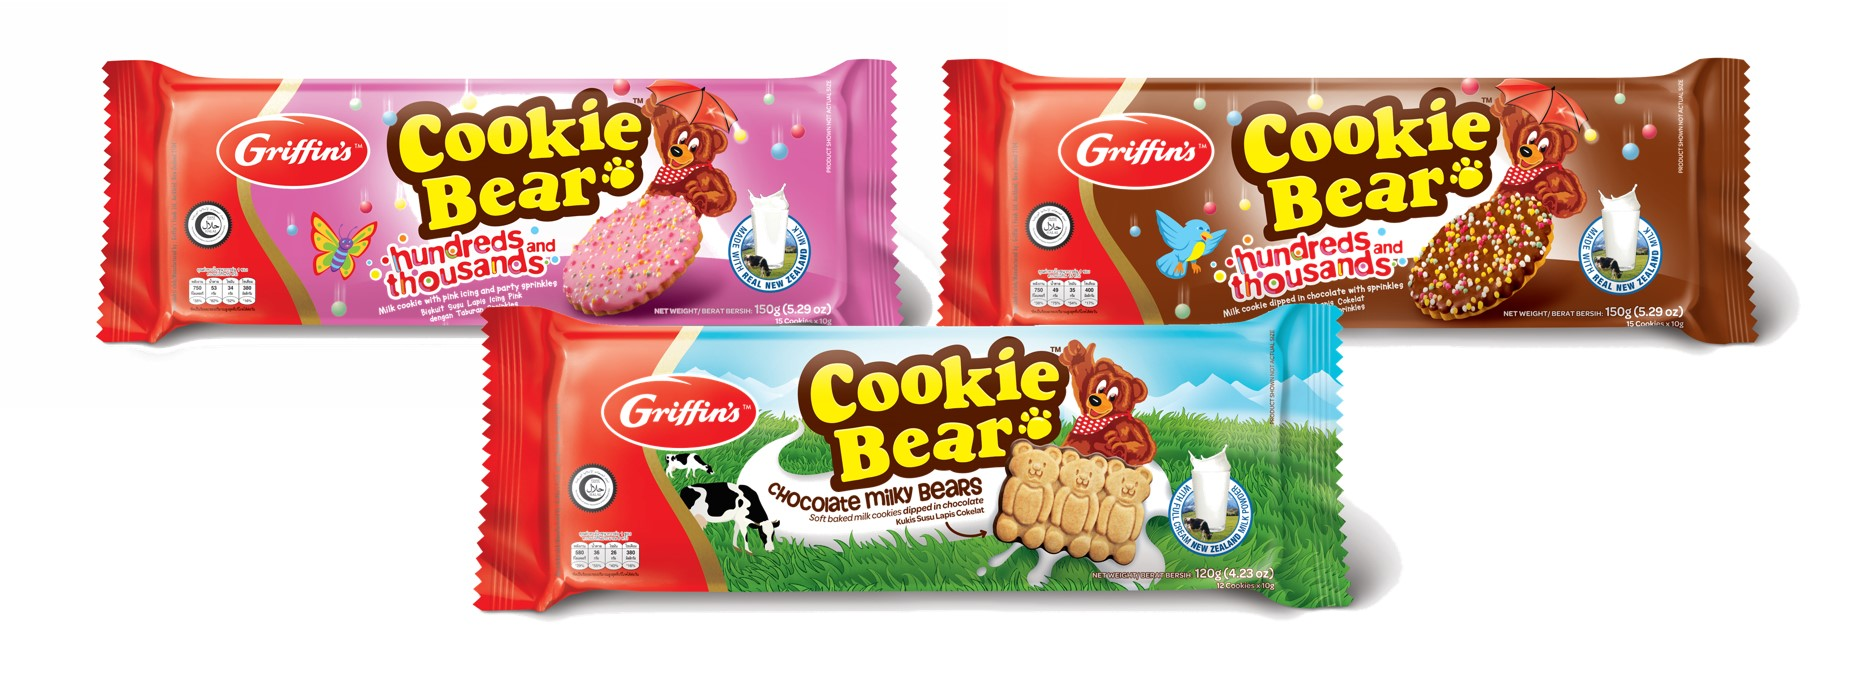 Griffin's Cookie Bear Biscuits from New Zealand's Favorite Biscuit Bakers is Here!